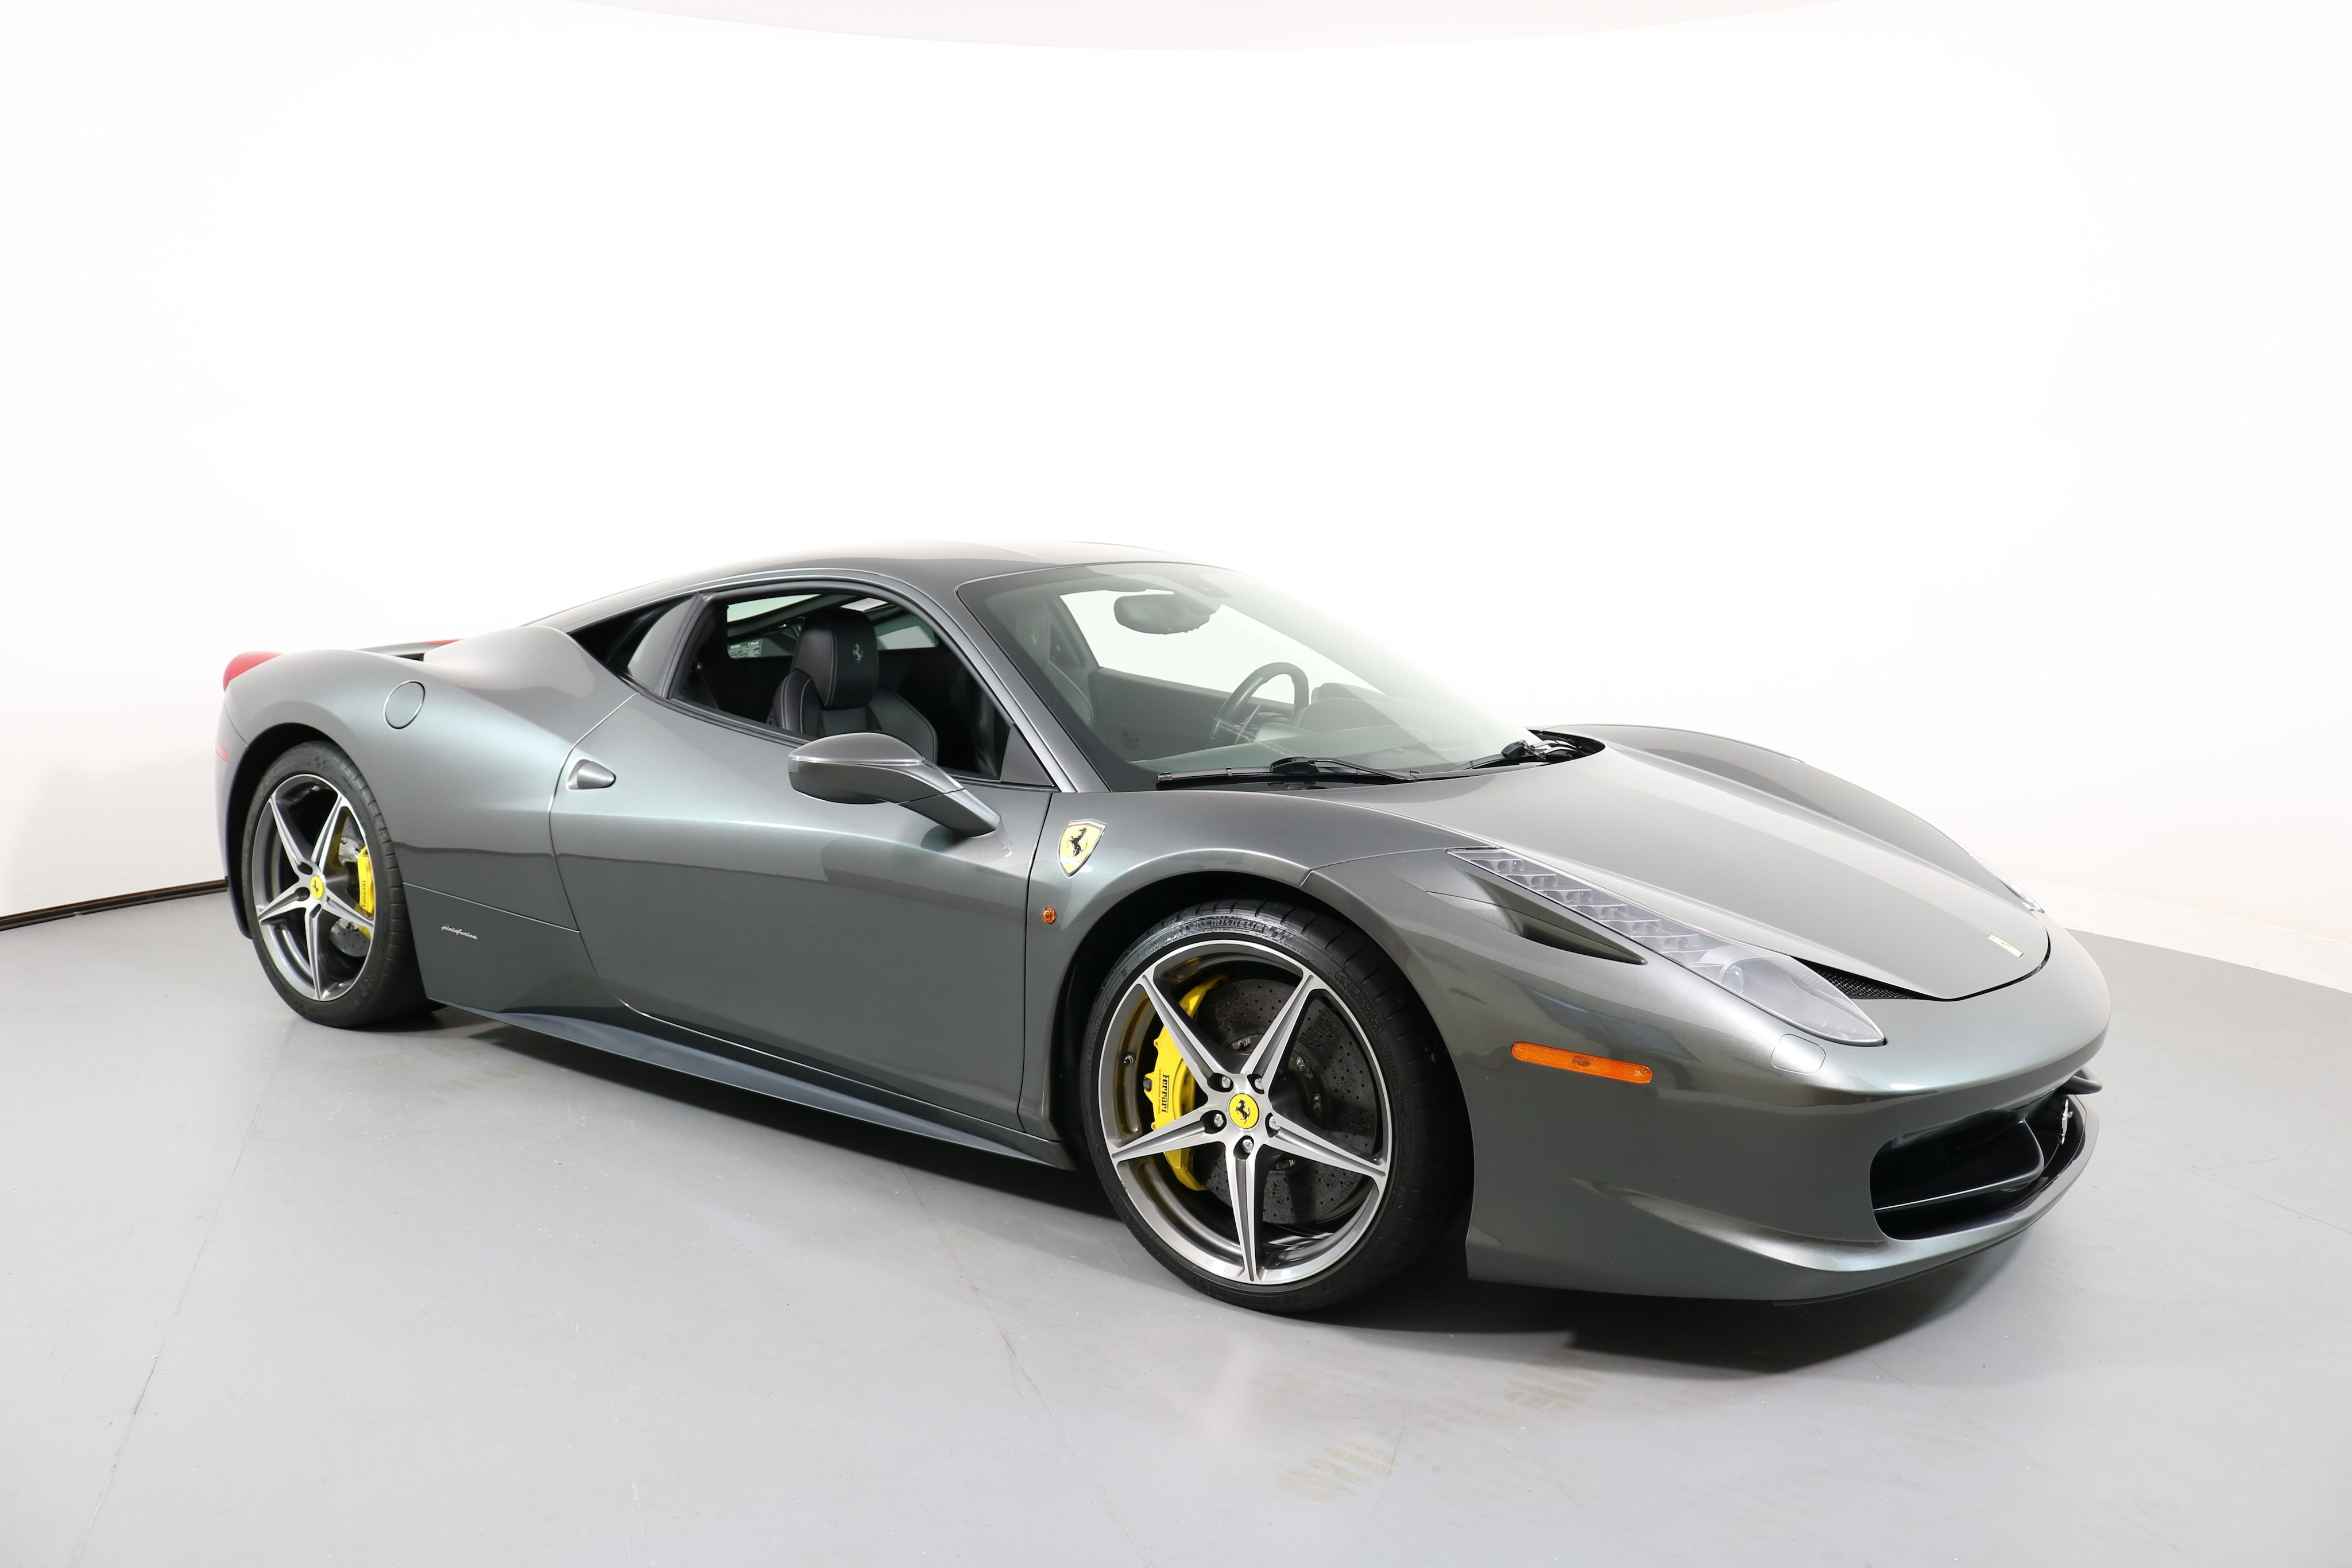 Pre Owned 2013 Ferrari 458 Italia 2dr Cpe For Sale In San Francisco Ca Zff67nfa7d0190731 Serving The Bay Area Mill Valley San Rafael And Redwood City